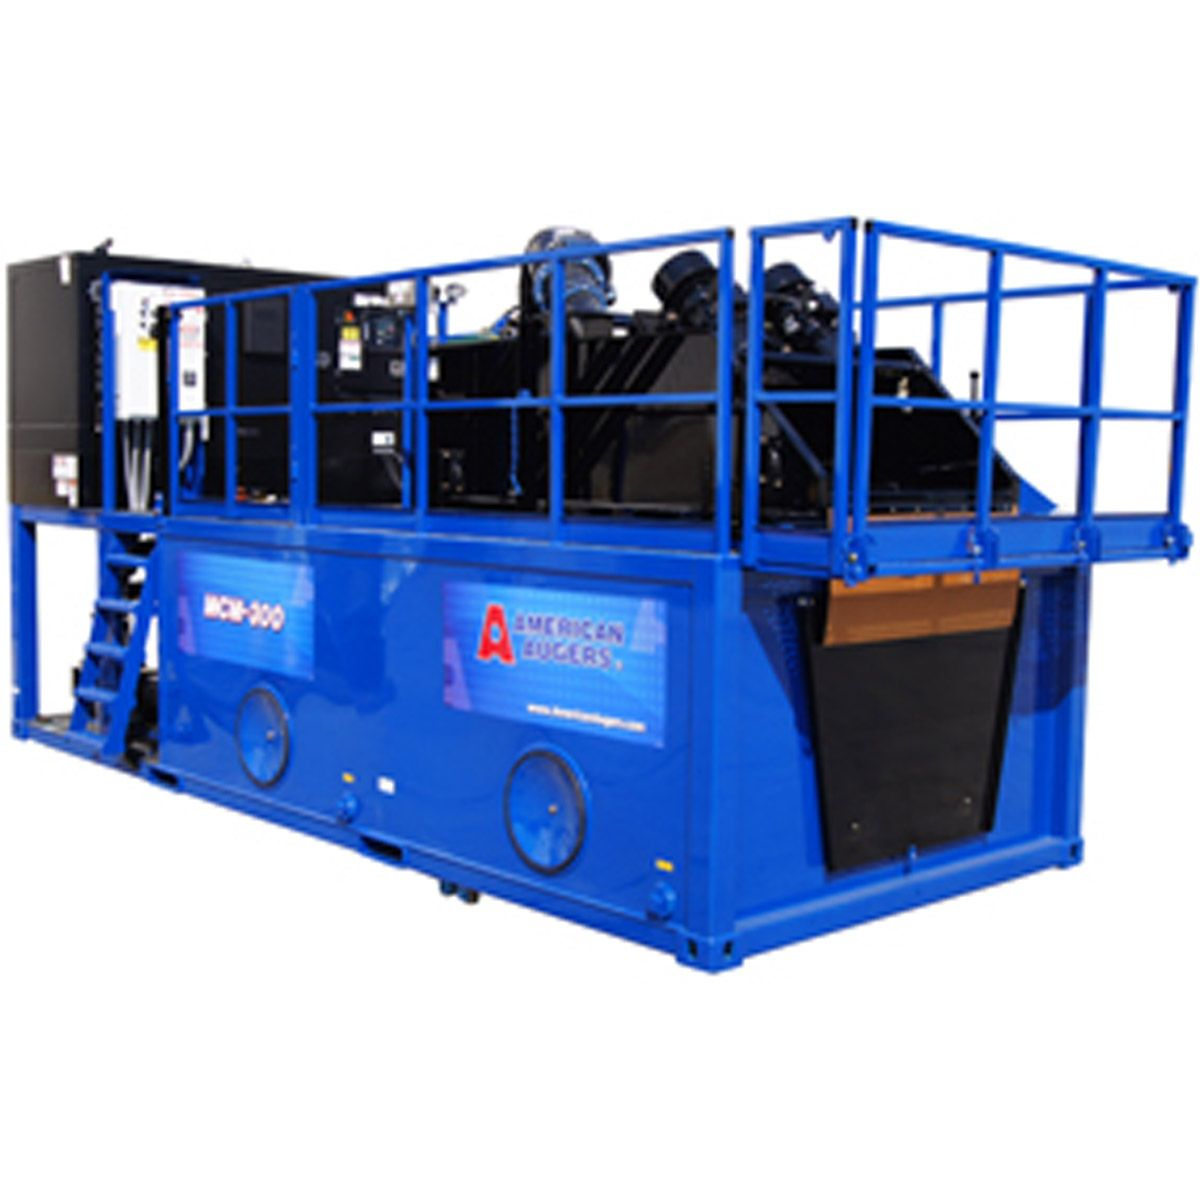 MCM-300 Drilling fluid cleaning systems